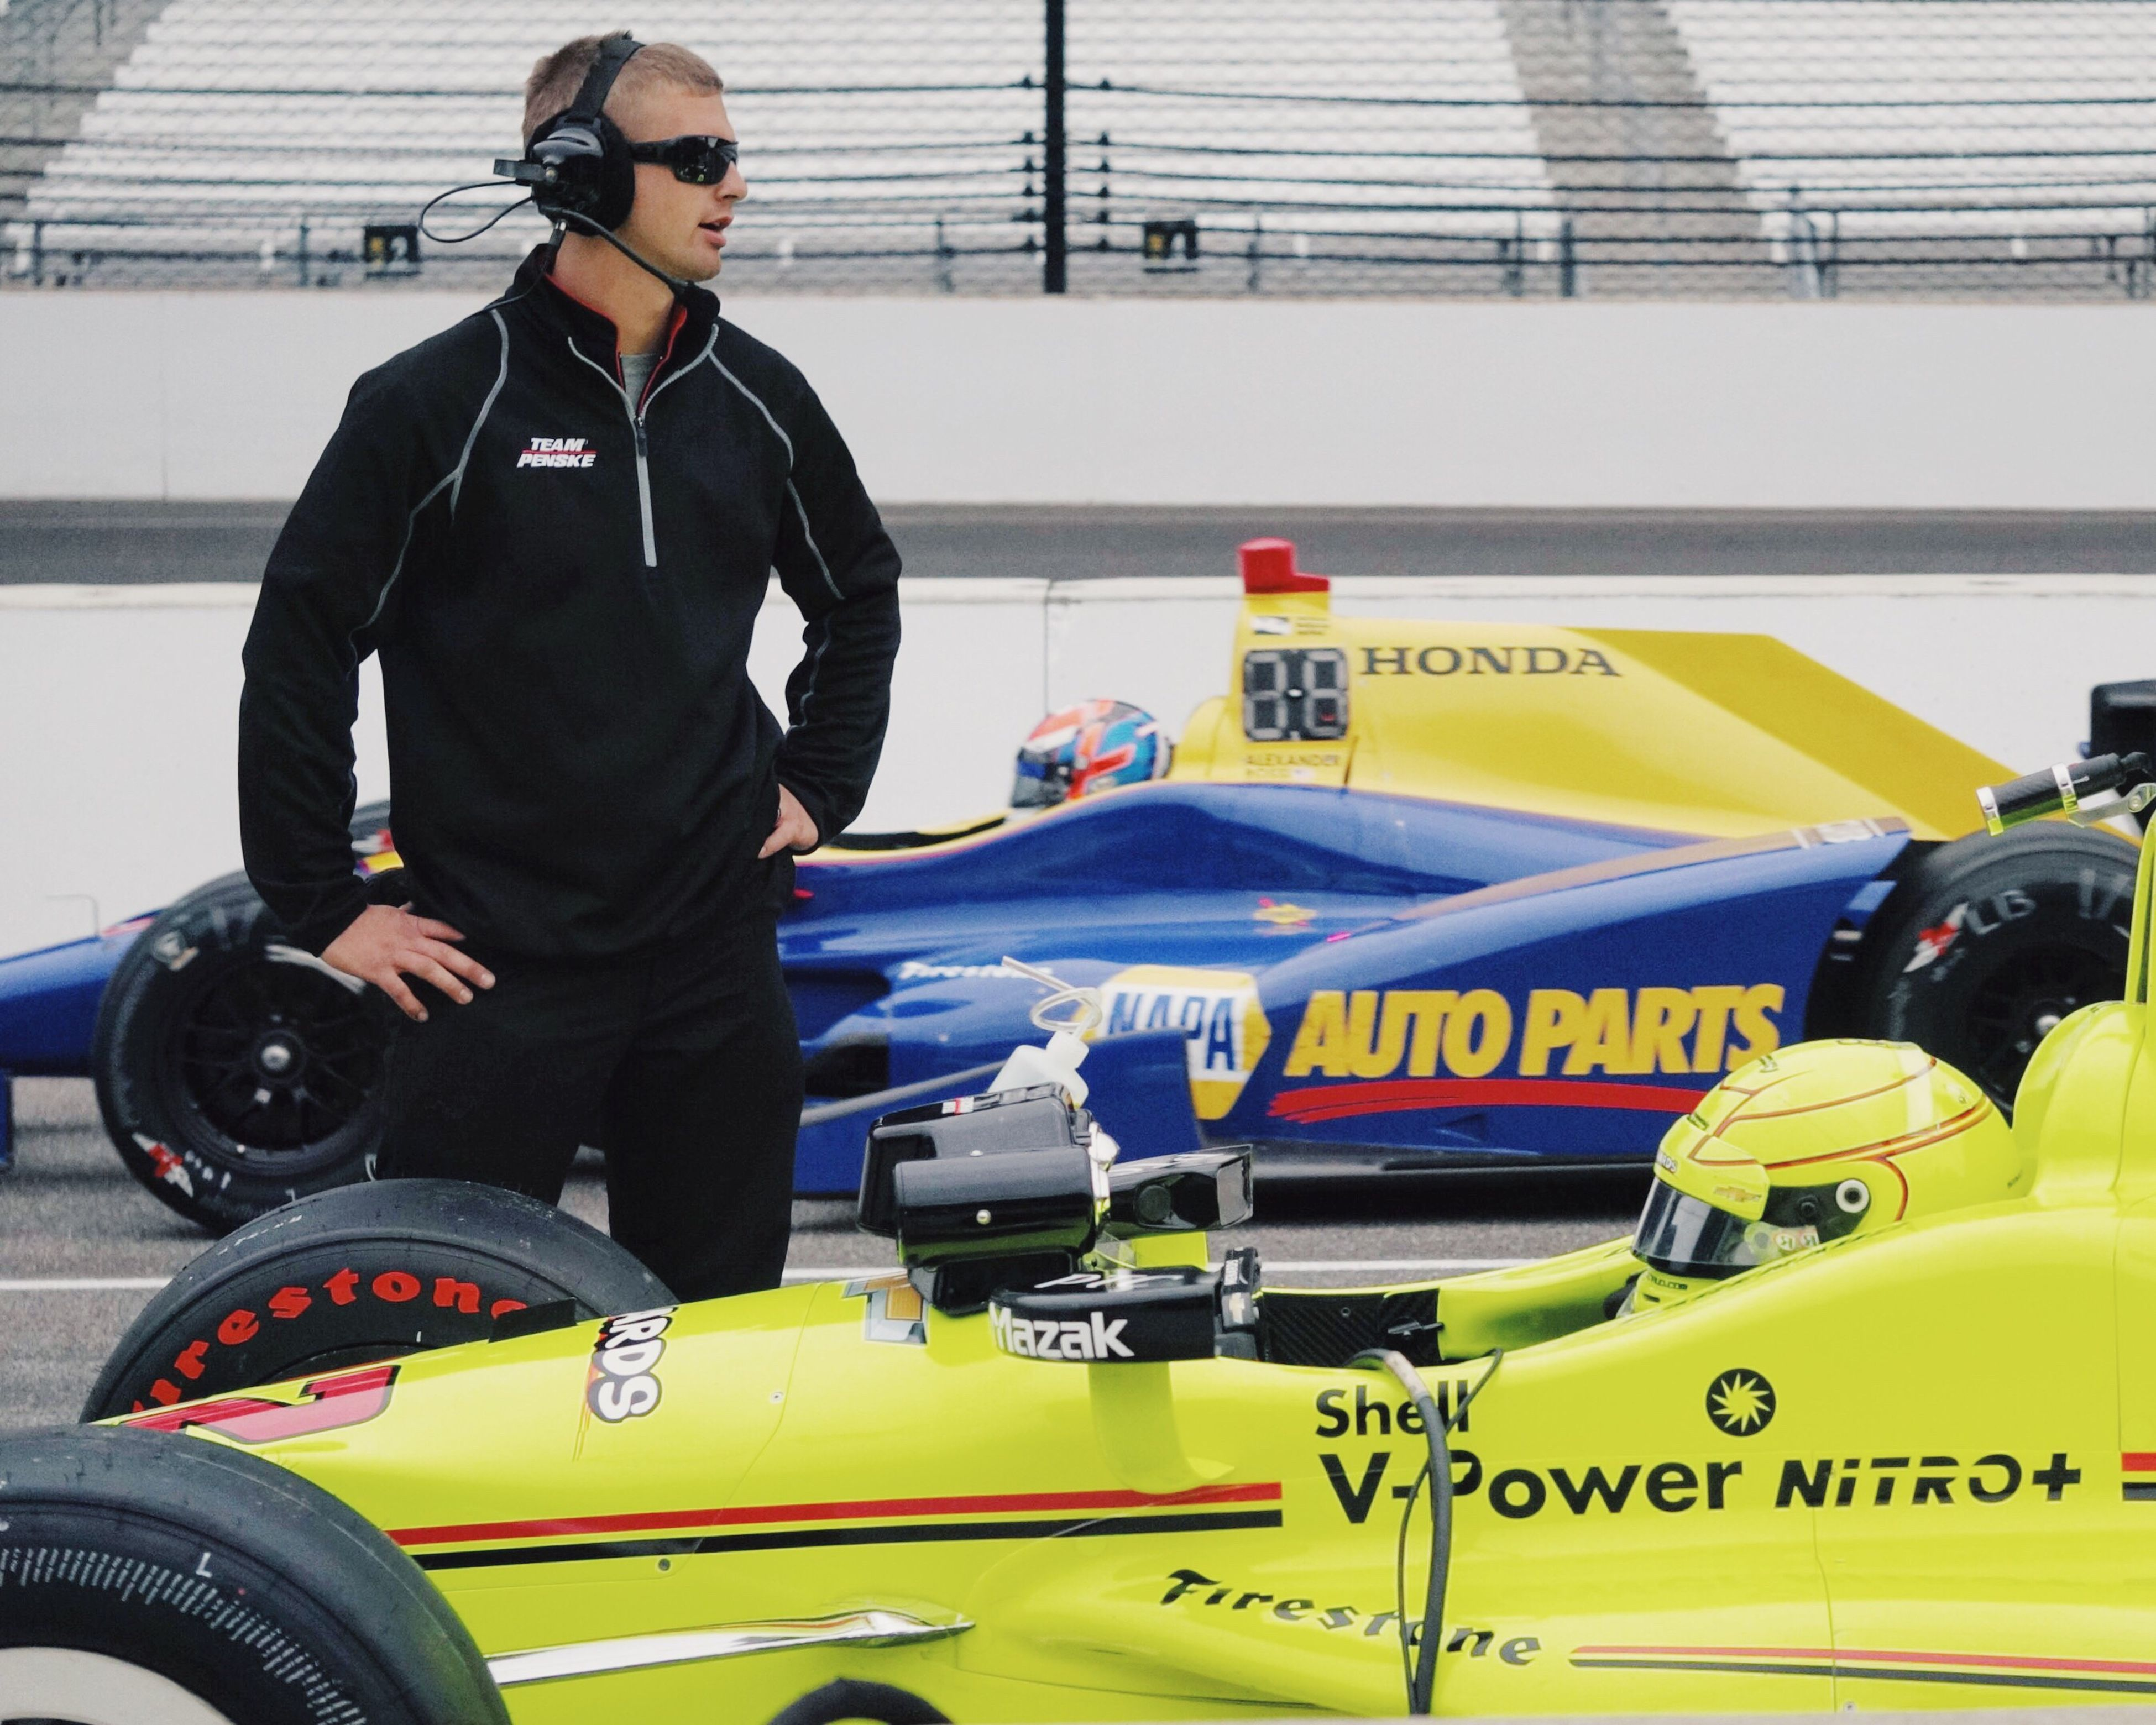 It was Fast Friday prior to tlhe 100th Running of the Indy 500 - In the foreground is Alexander Rossi who went on to win this year's race. MeinAutomoment